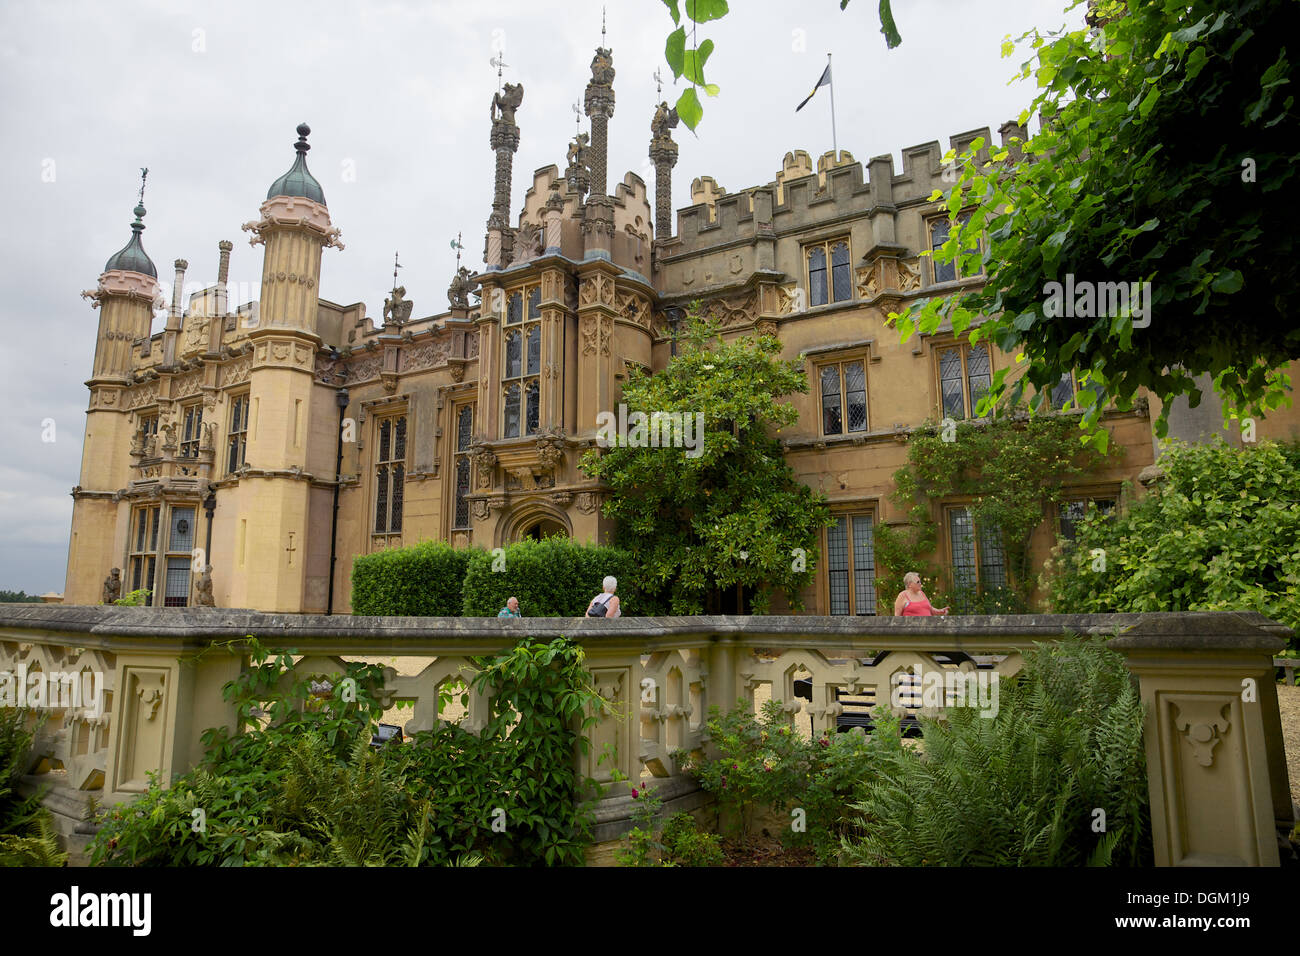 Knebworth House, Hertfordshire, England, home of the Lytton family since 1490. - Stock Image